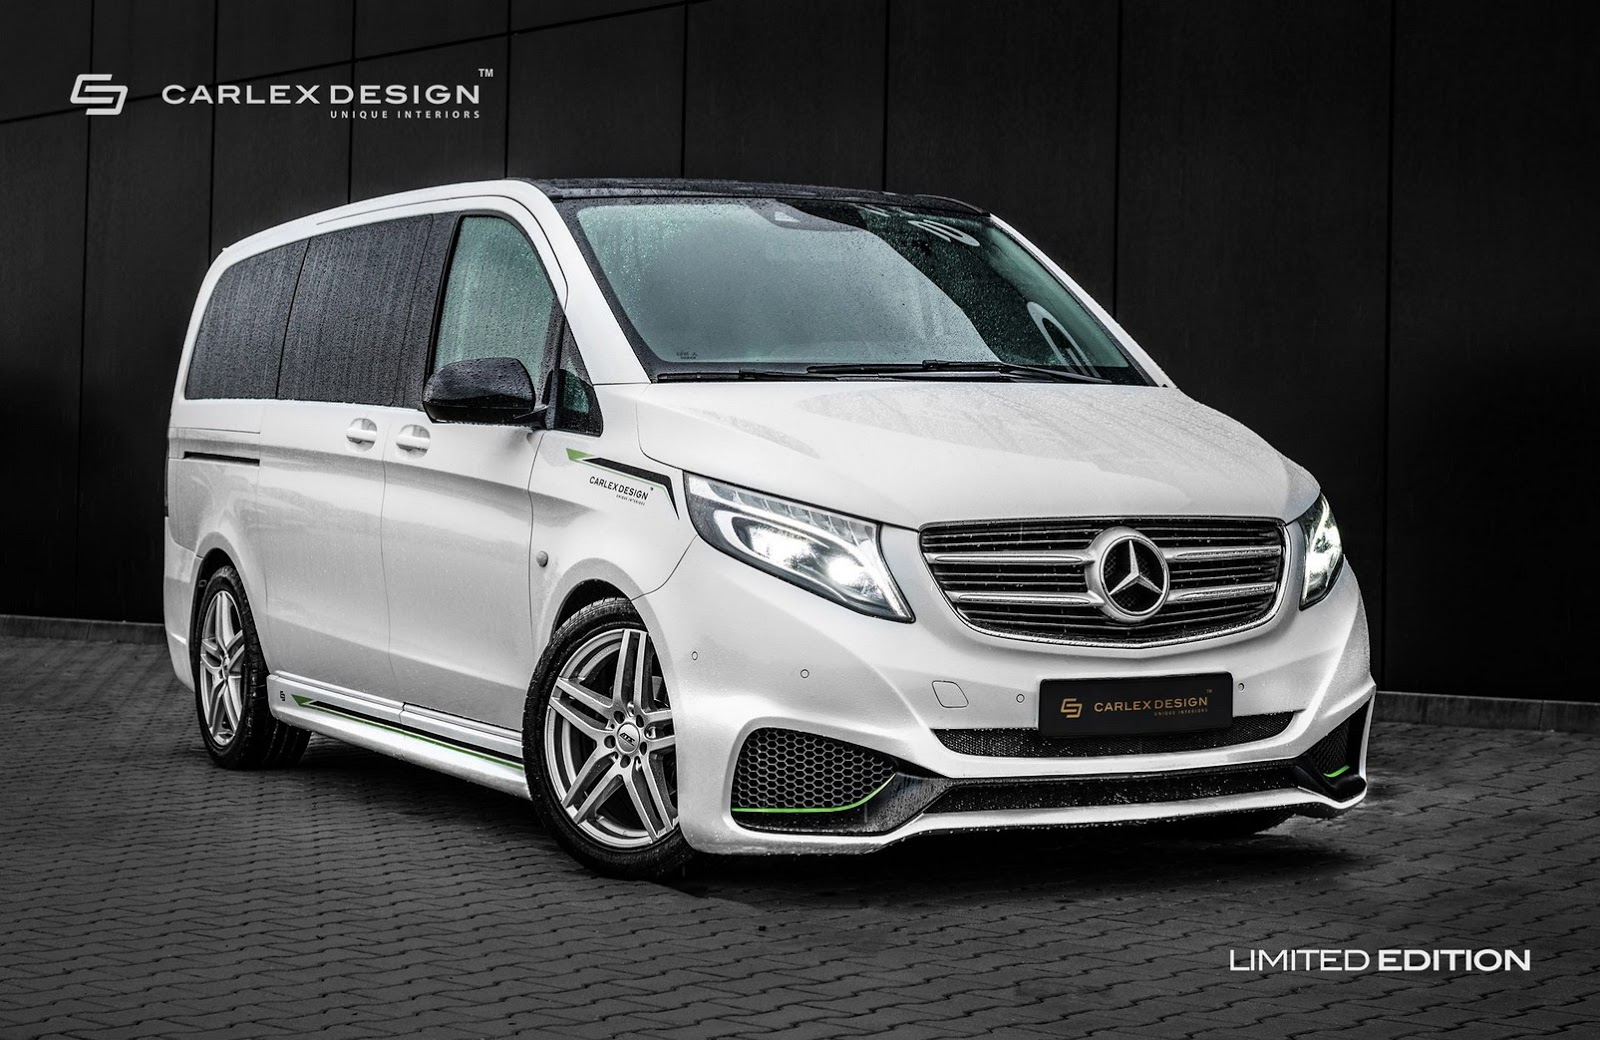 carlex design builds another sporty mercedes v